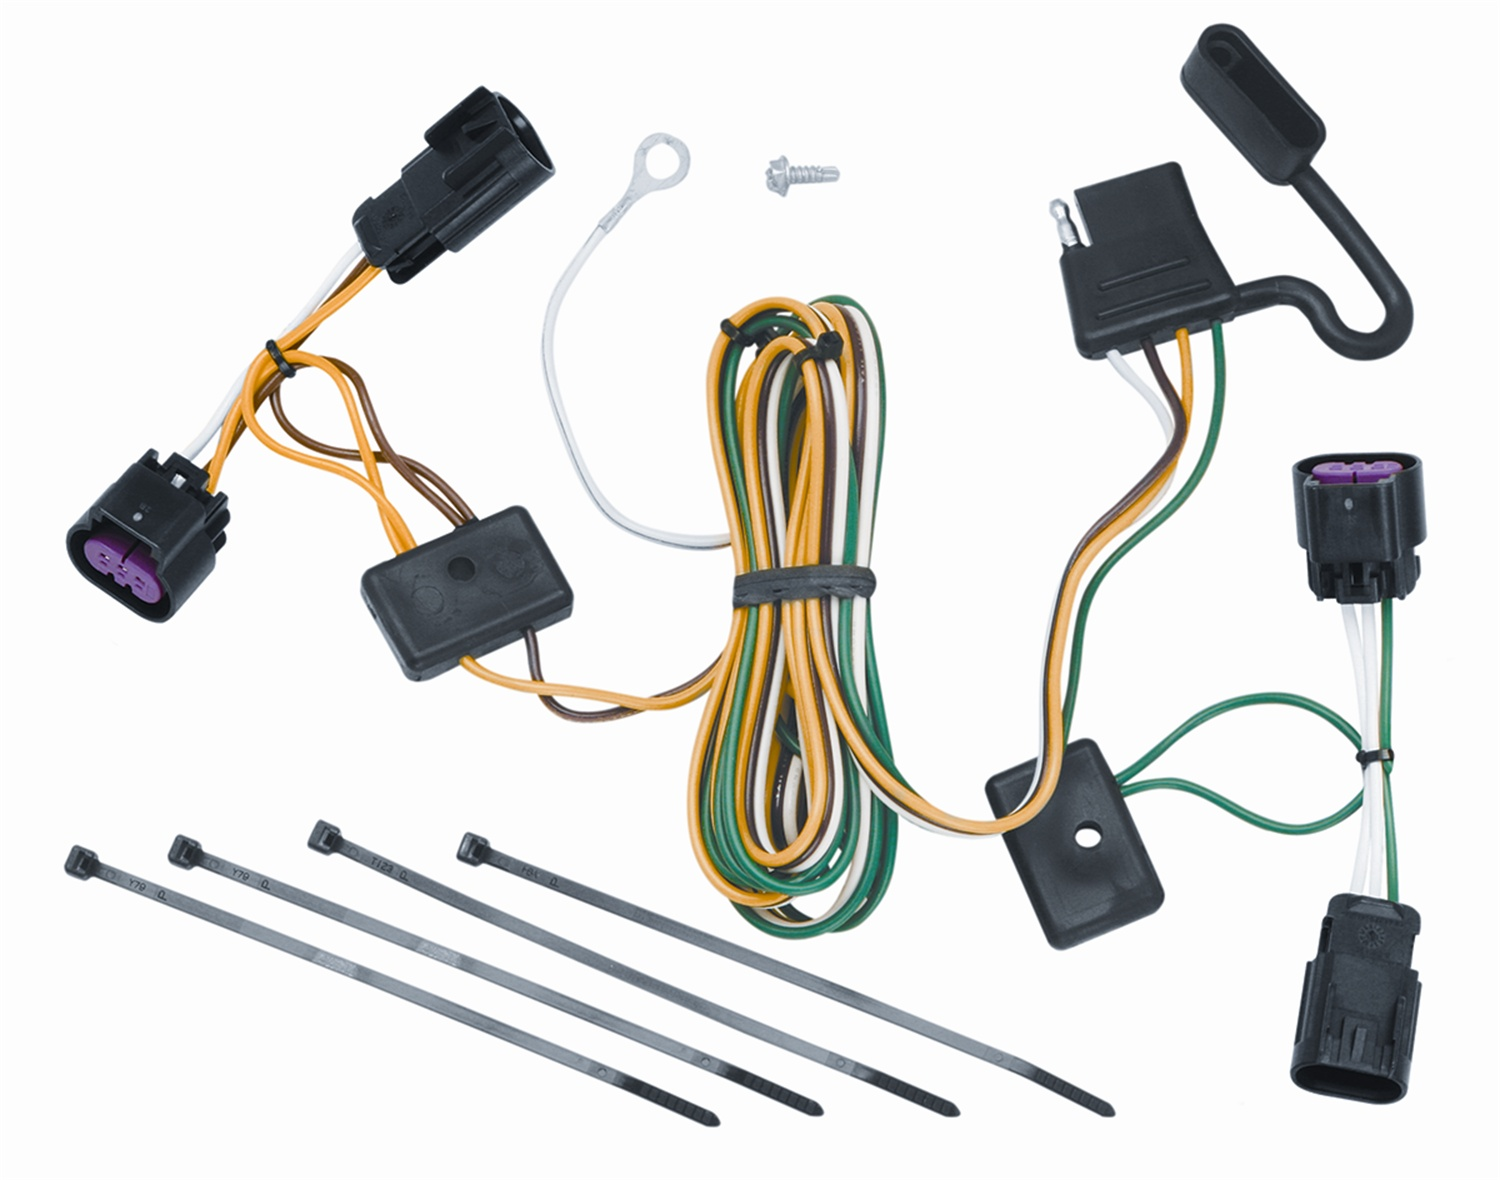 2012 Traverse Trailer Wiring Harness Electrical Diagrams Wire For Chevy Chevrolet Oem Data U2022 Light Diagram